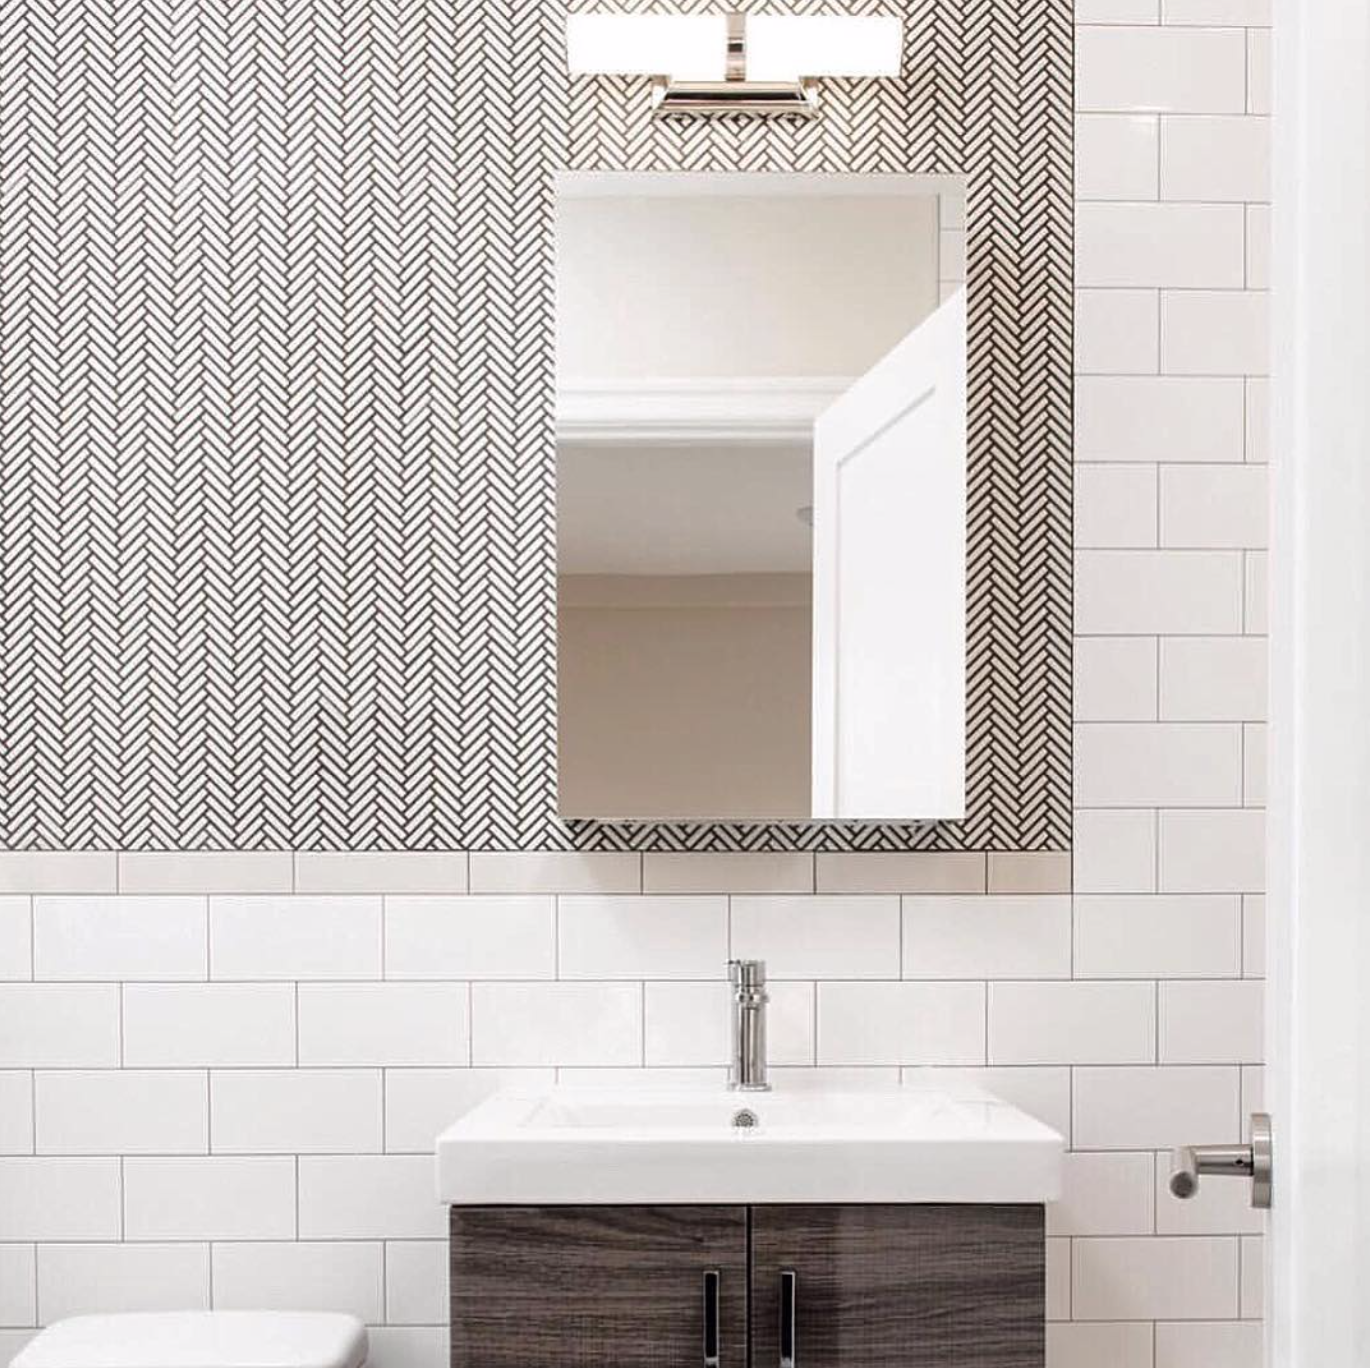 Bold herringbone tile and sleek storage solutions give this New York City bathroom a clean and modern aesthetic. Design by  @perianth_buymyeye ; photo by  @njohnstonphotography